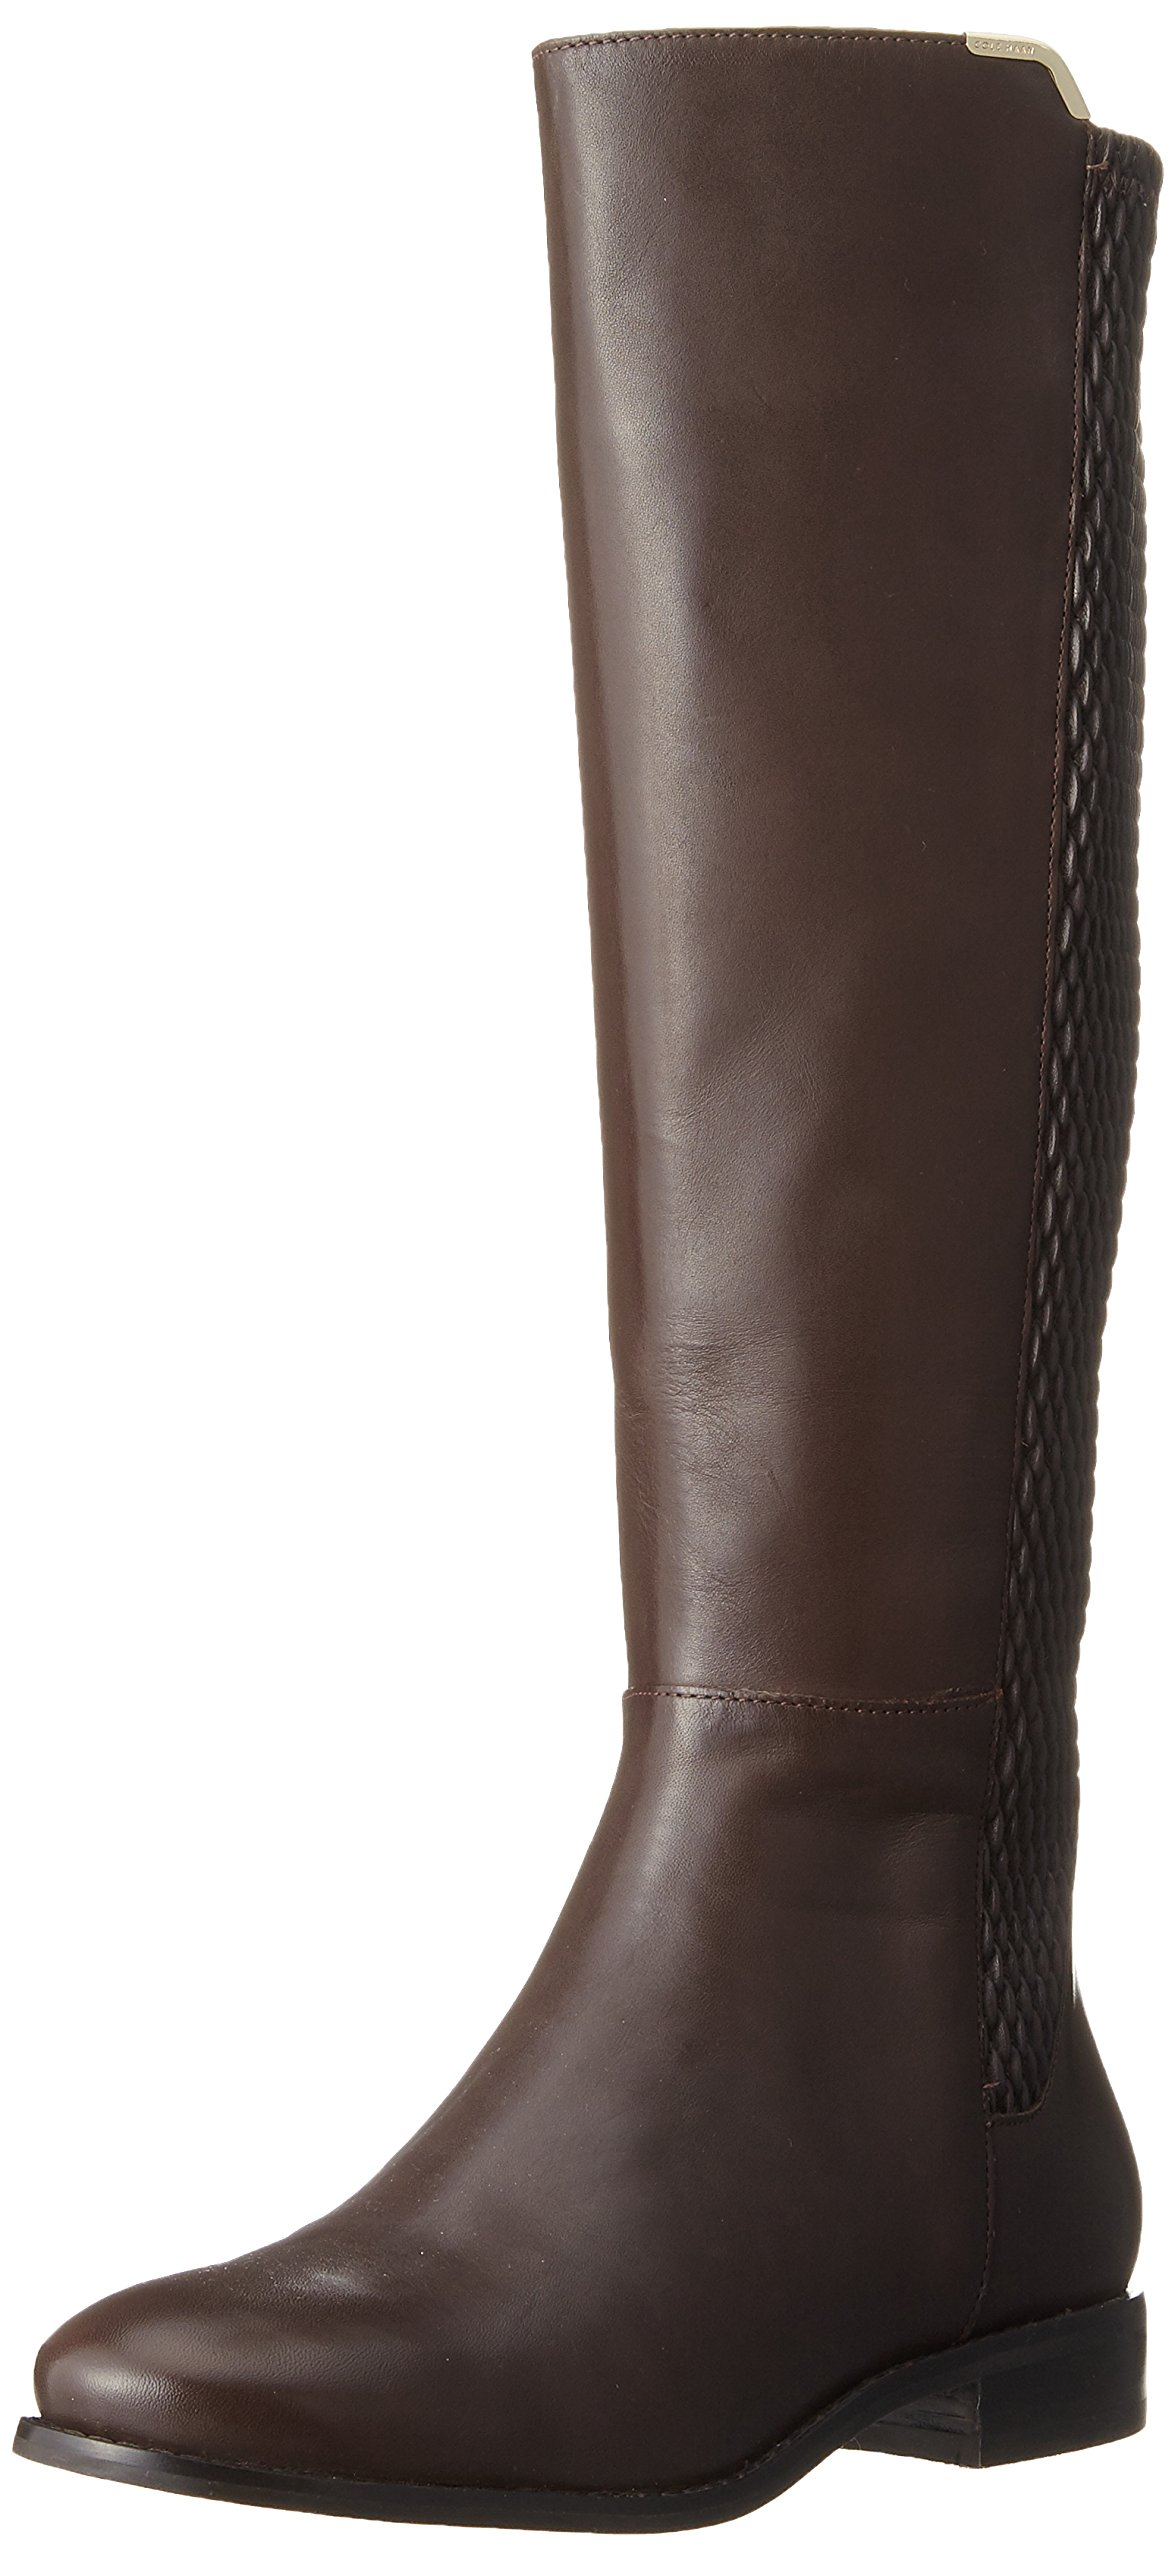 Cole Haan Women's Rockland Boot Riding Boot, Chestnut Leather, 7 B US by Cole Haan